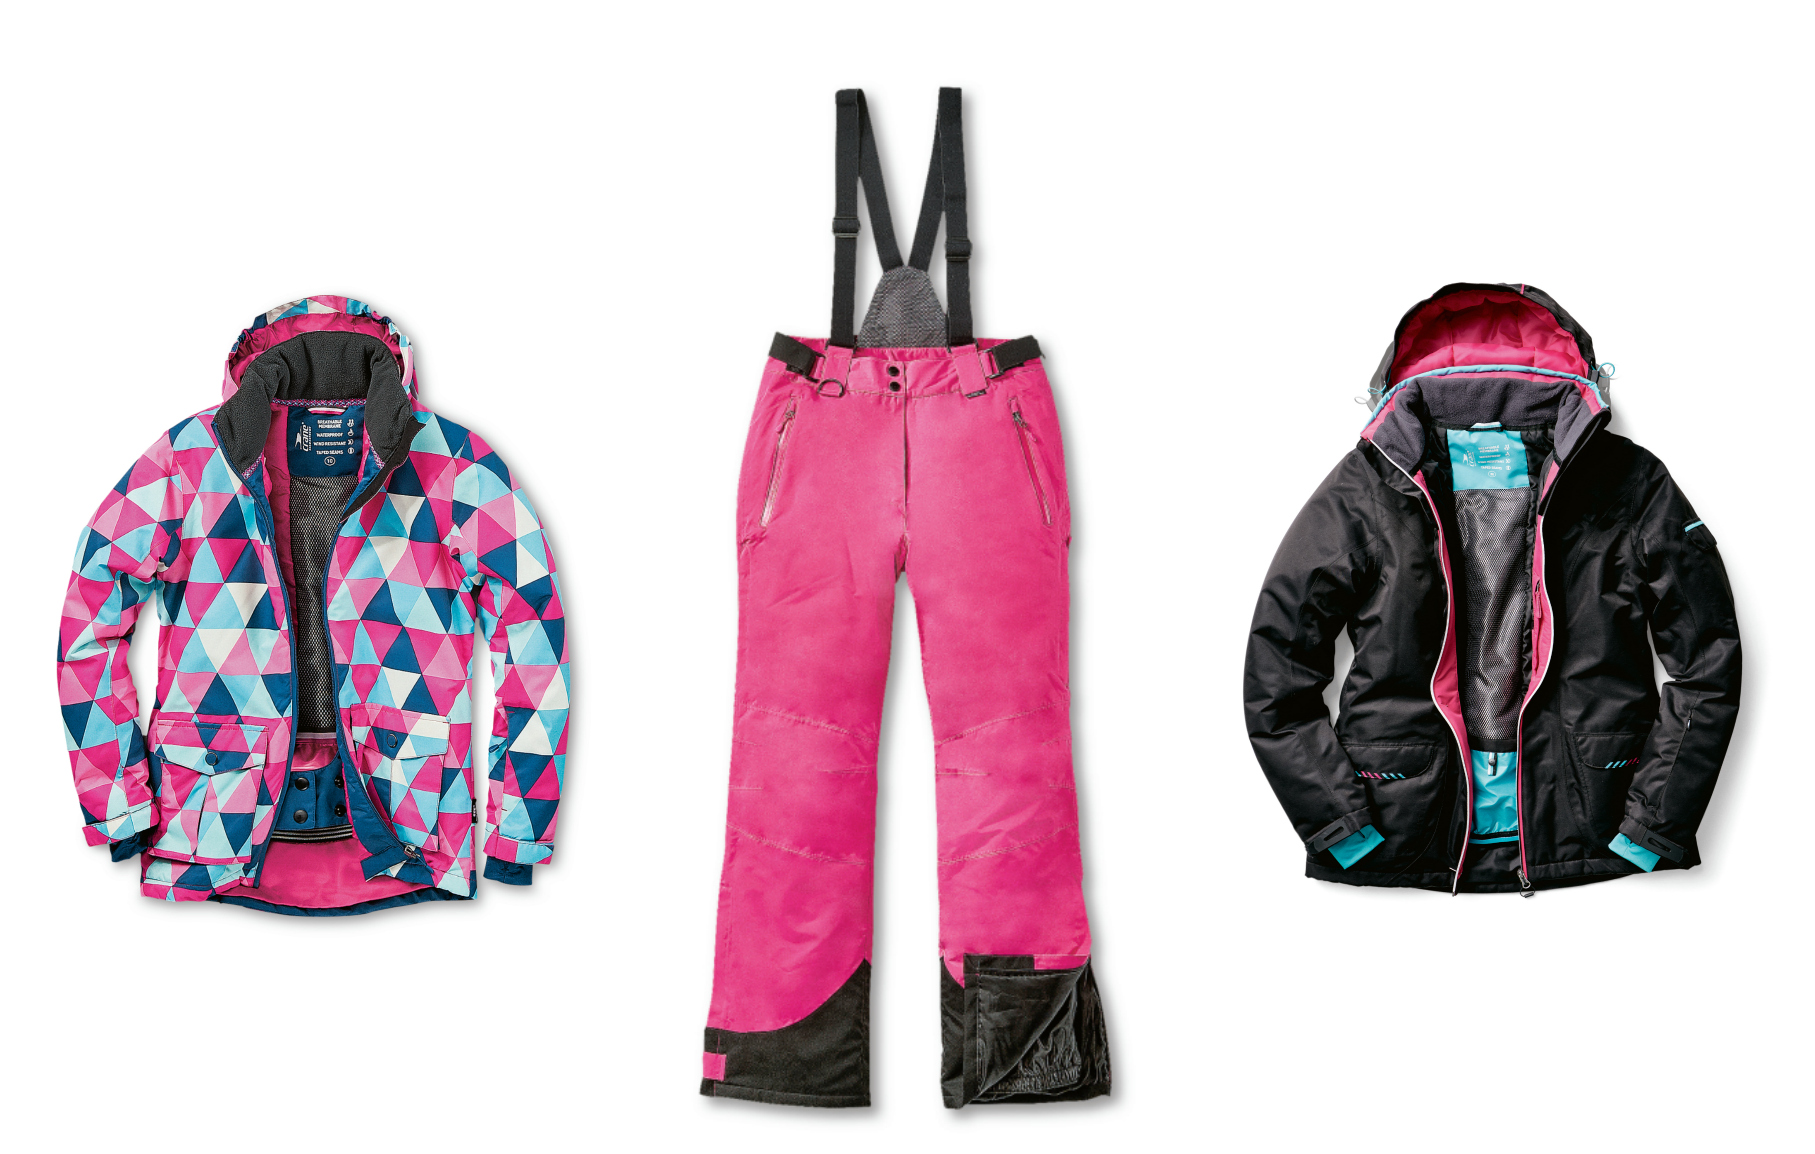 8c578cd701fe6 Aldi launch 2017 Snow Gear - on sale May 20 - SnowsBest